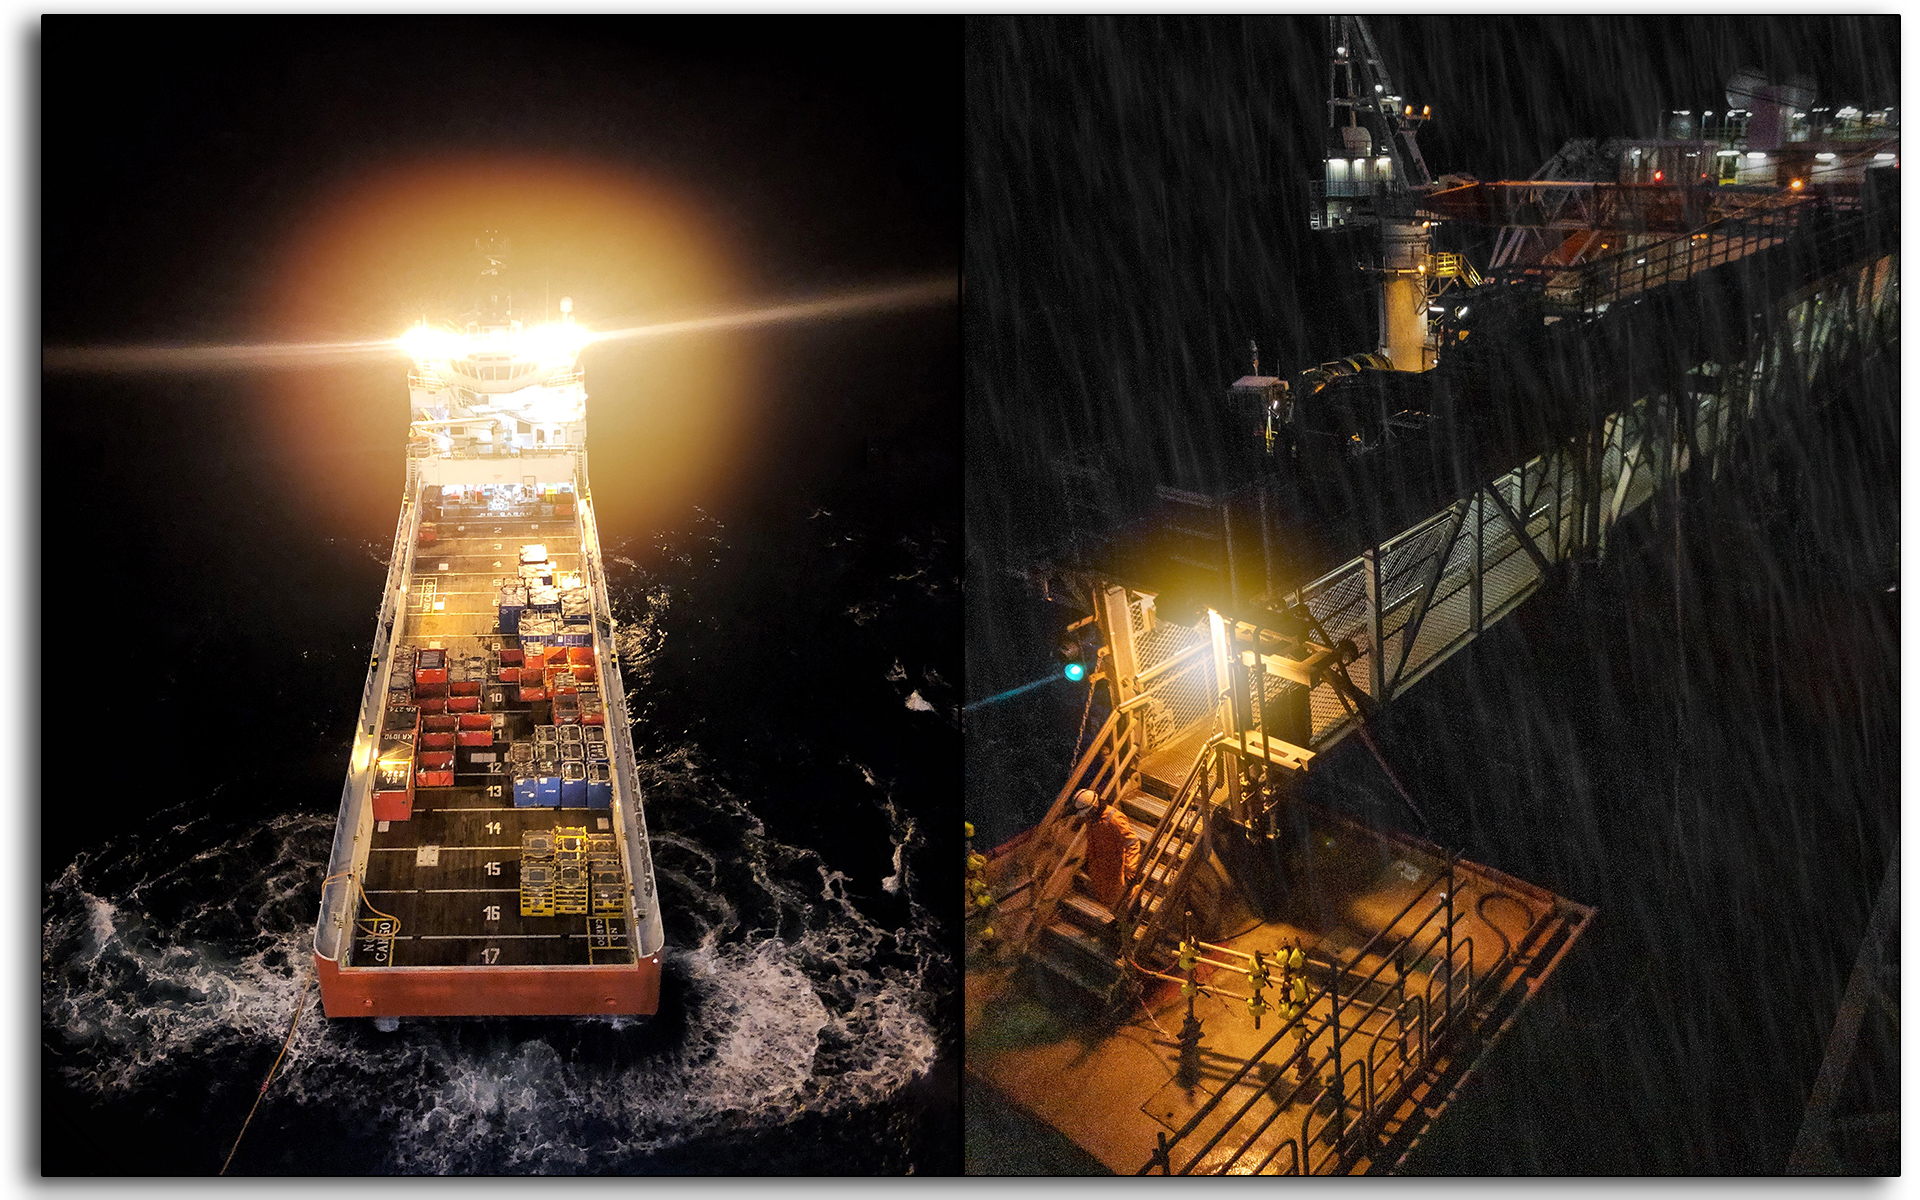 Bridge, gangway, raining, cold, worker, wet, Oil and gas, oil rig, Scotland, industry, industrial, Mariner, workers, construction, vessel, shipping, marine, delivery, boat.jpg